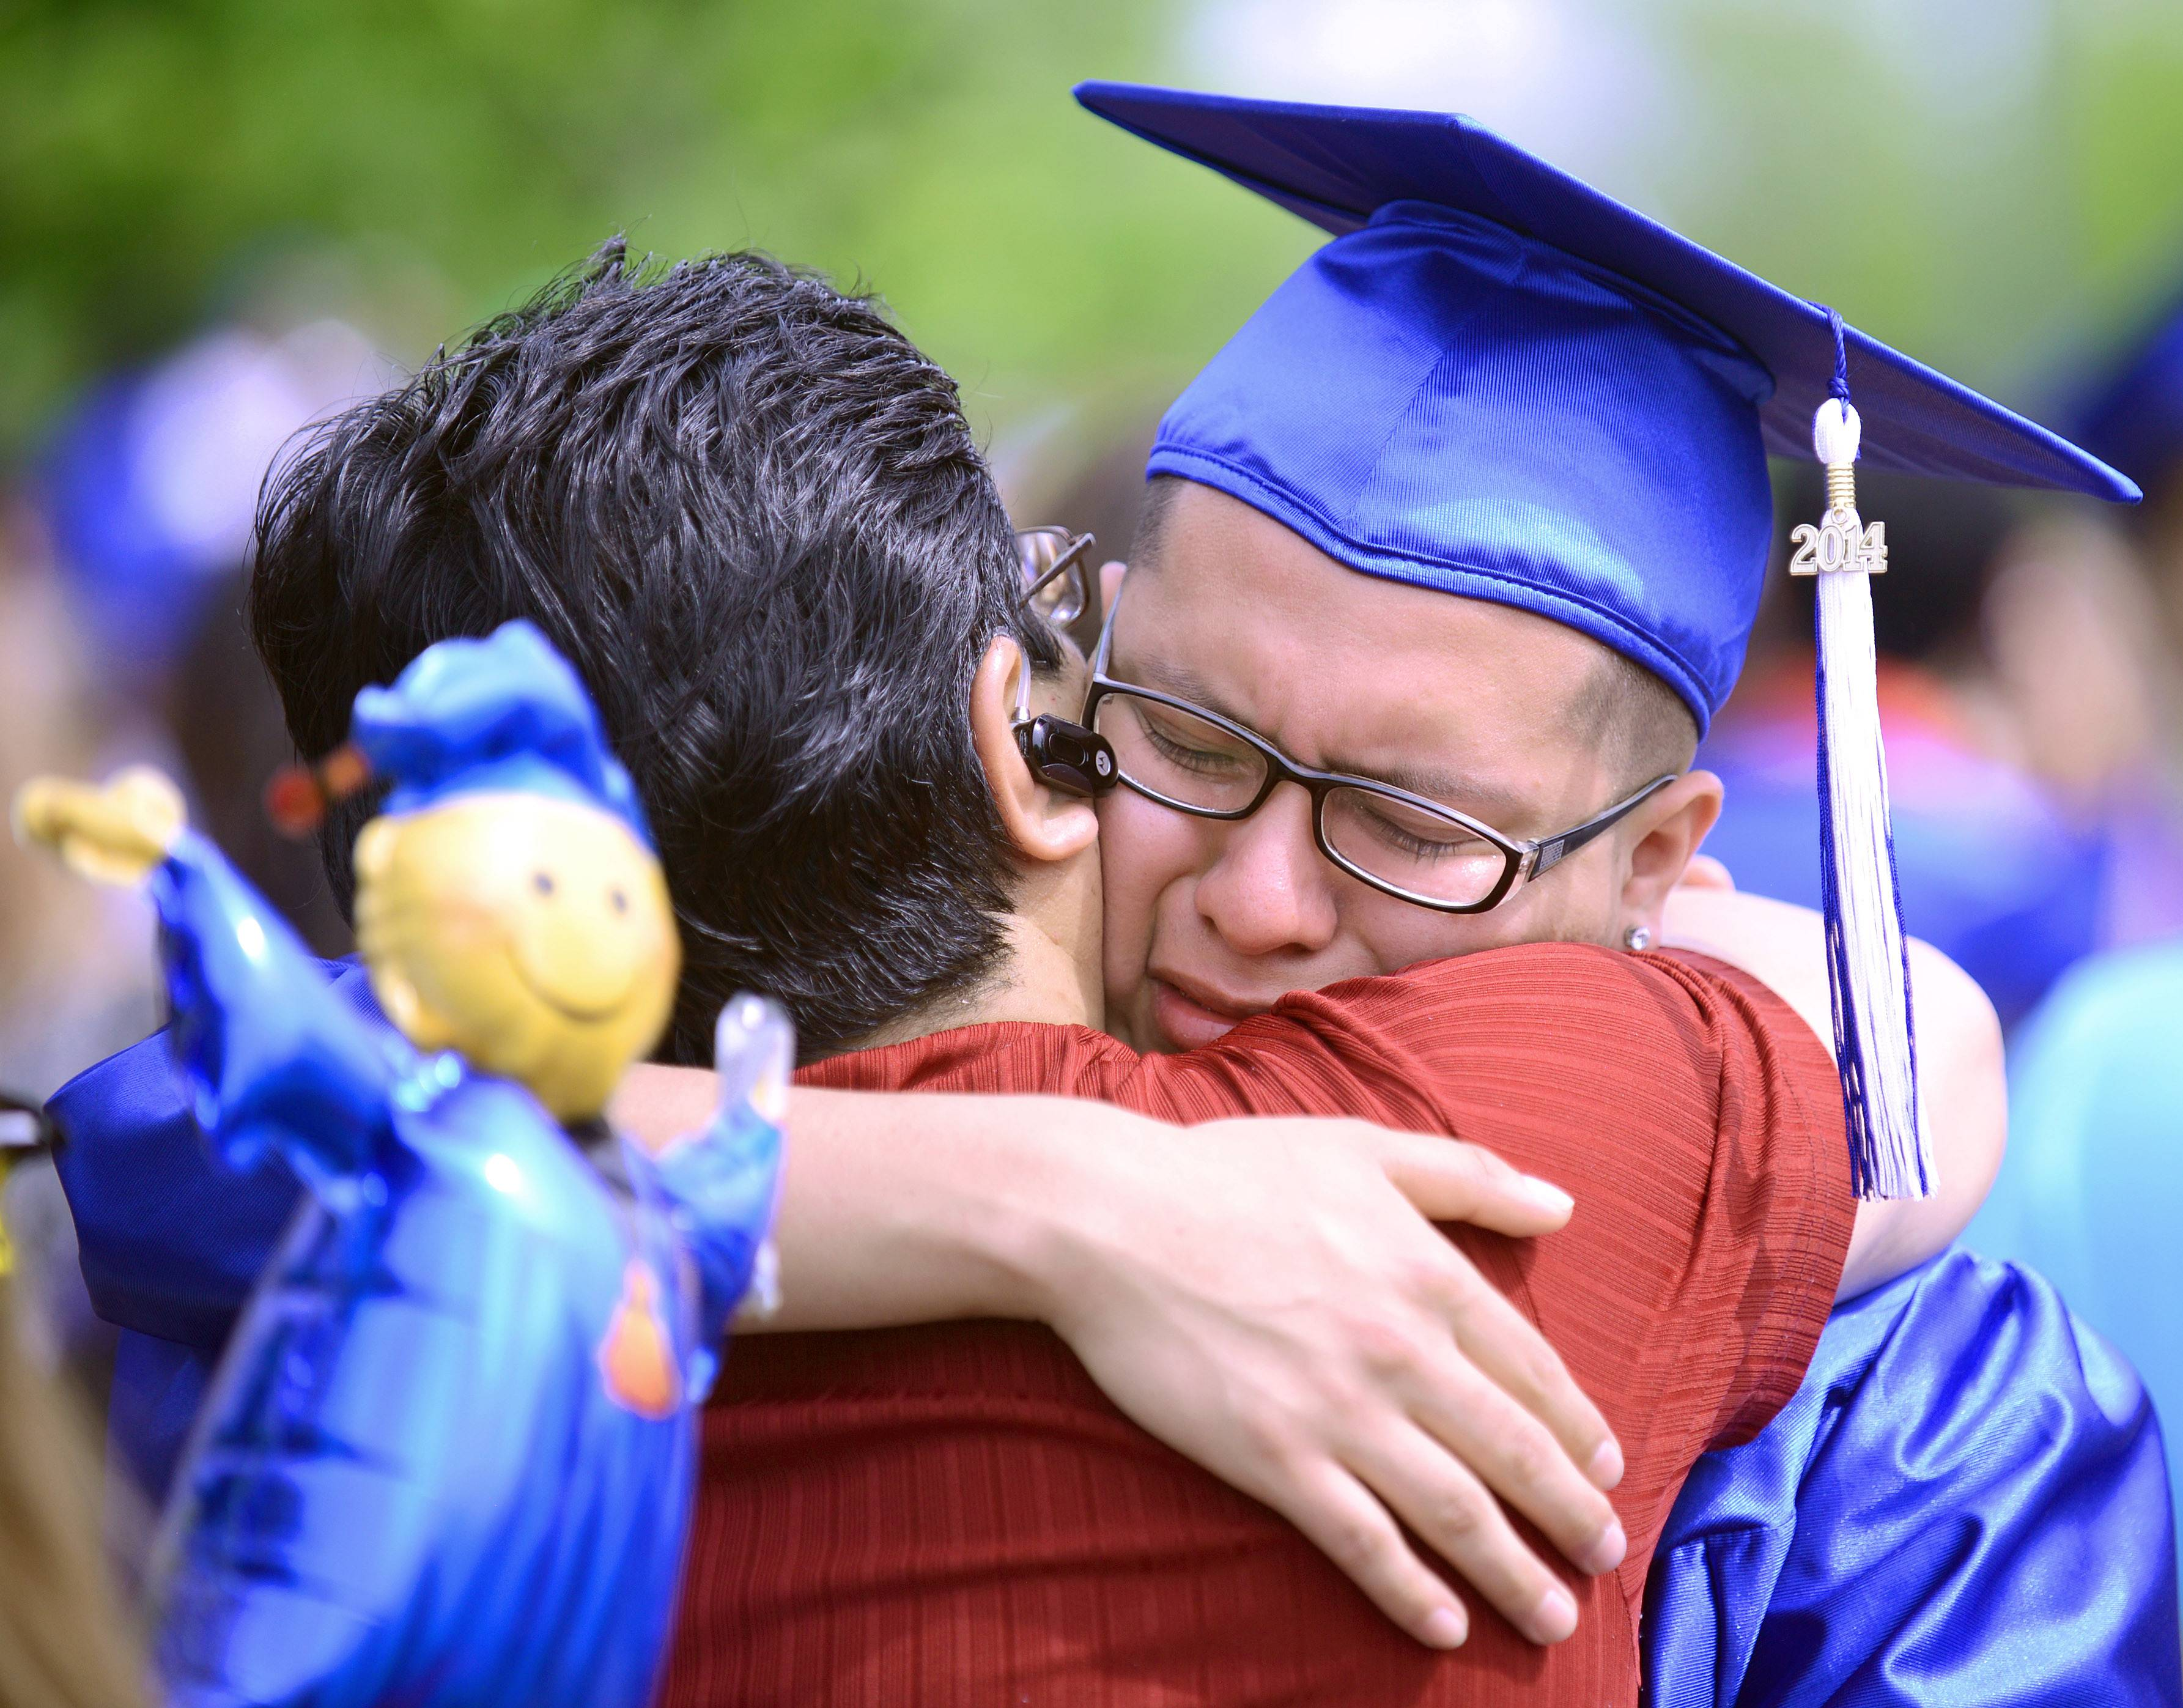 Fernando Garcia of Elgin shares a long, emotional hug with his father, Jorge, after graduating at Larkin High School's commencement ceremony at the Sears Centre in Hoffman Estates on Saturday, May 24.